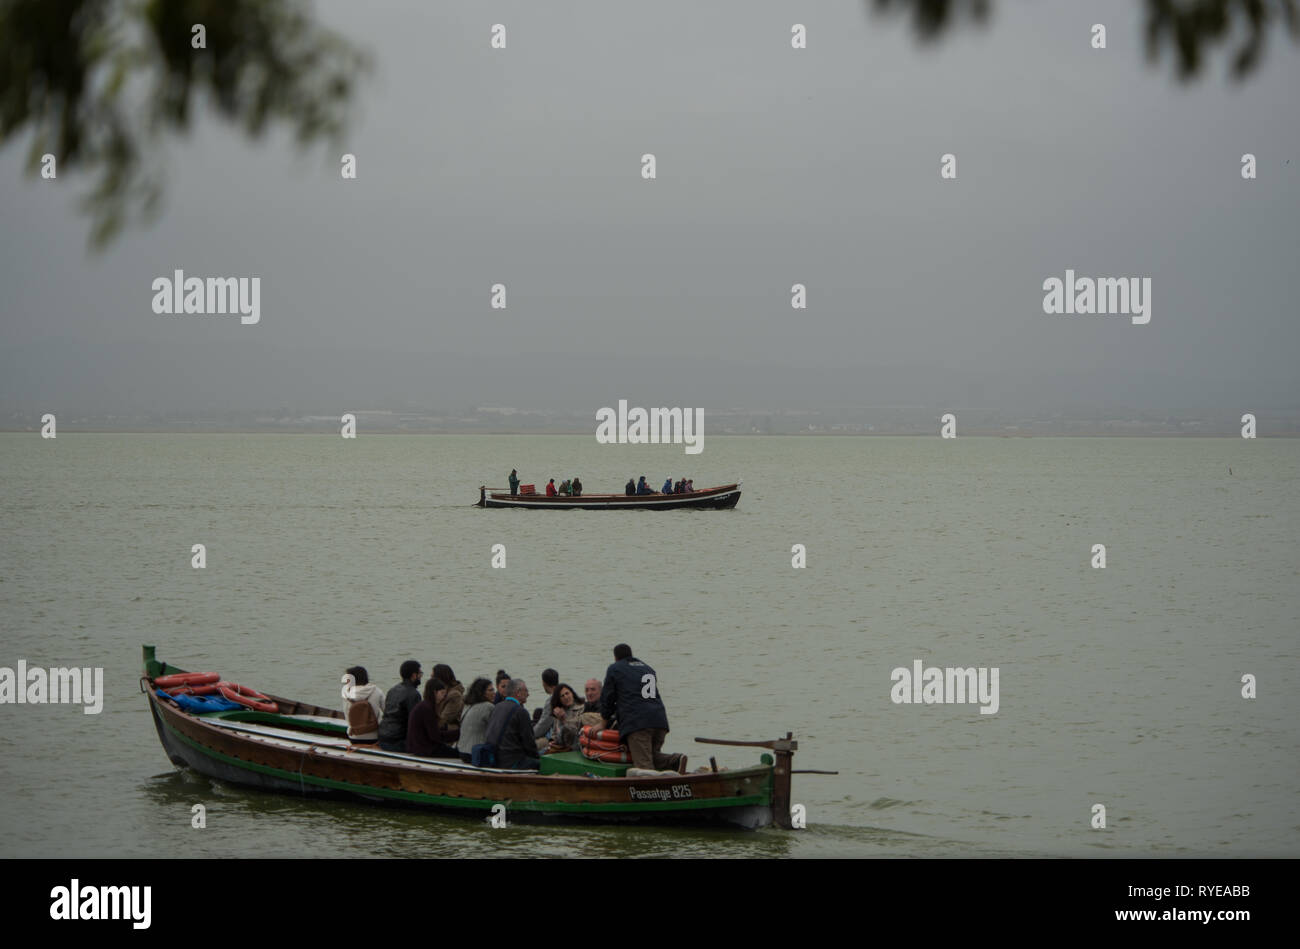 Boat trips round the lake and it s chanels Rich lake s flora and fauna La Albufera lake Valencia Spain - Stock Image